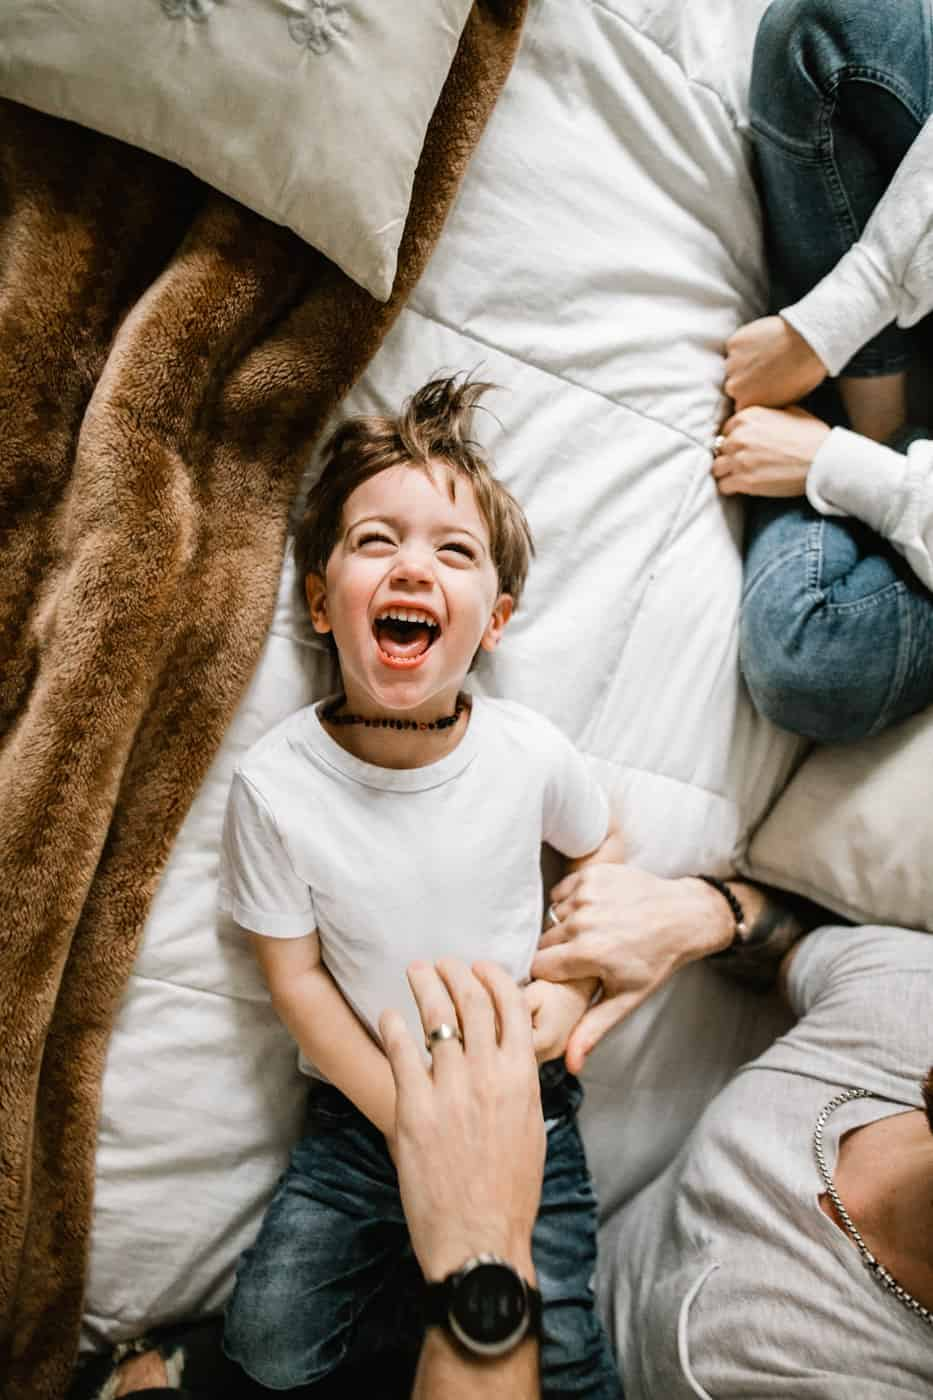 little boy laughing and being tickled by dad on bed